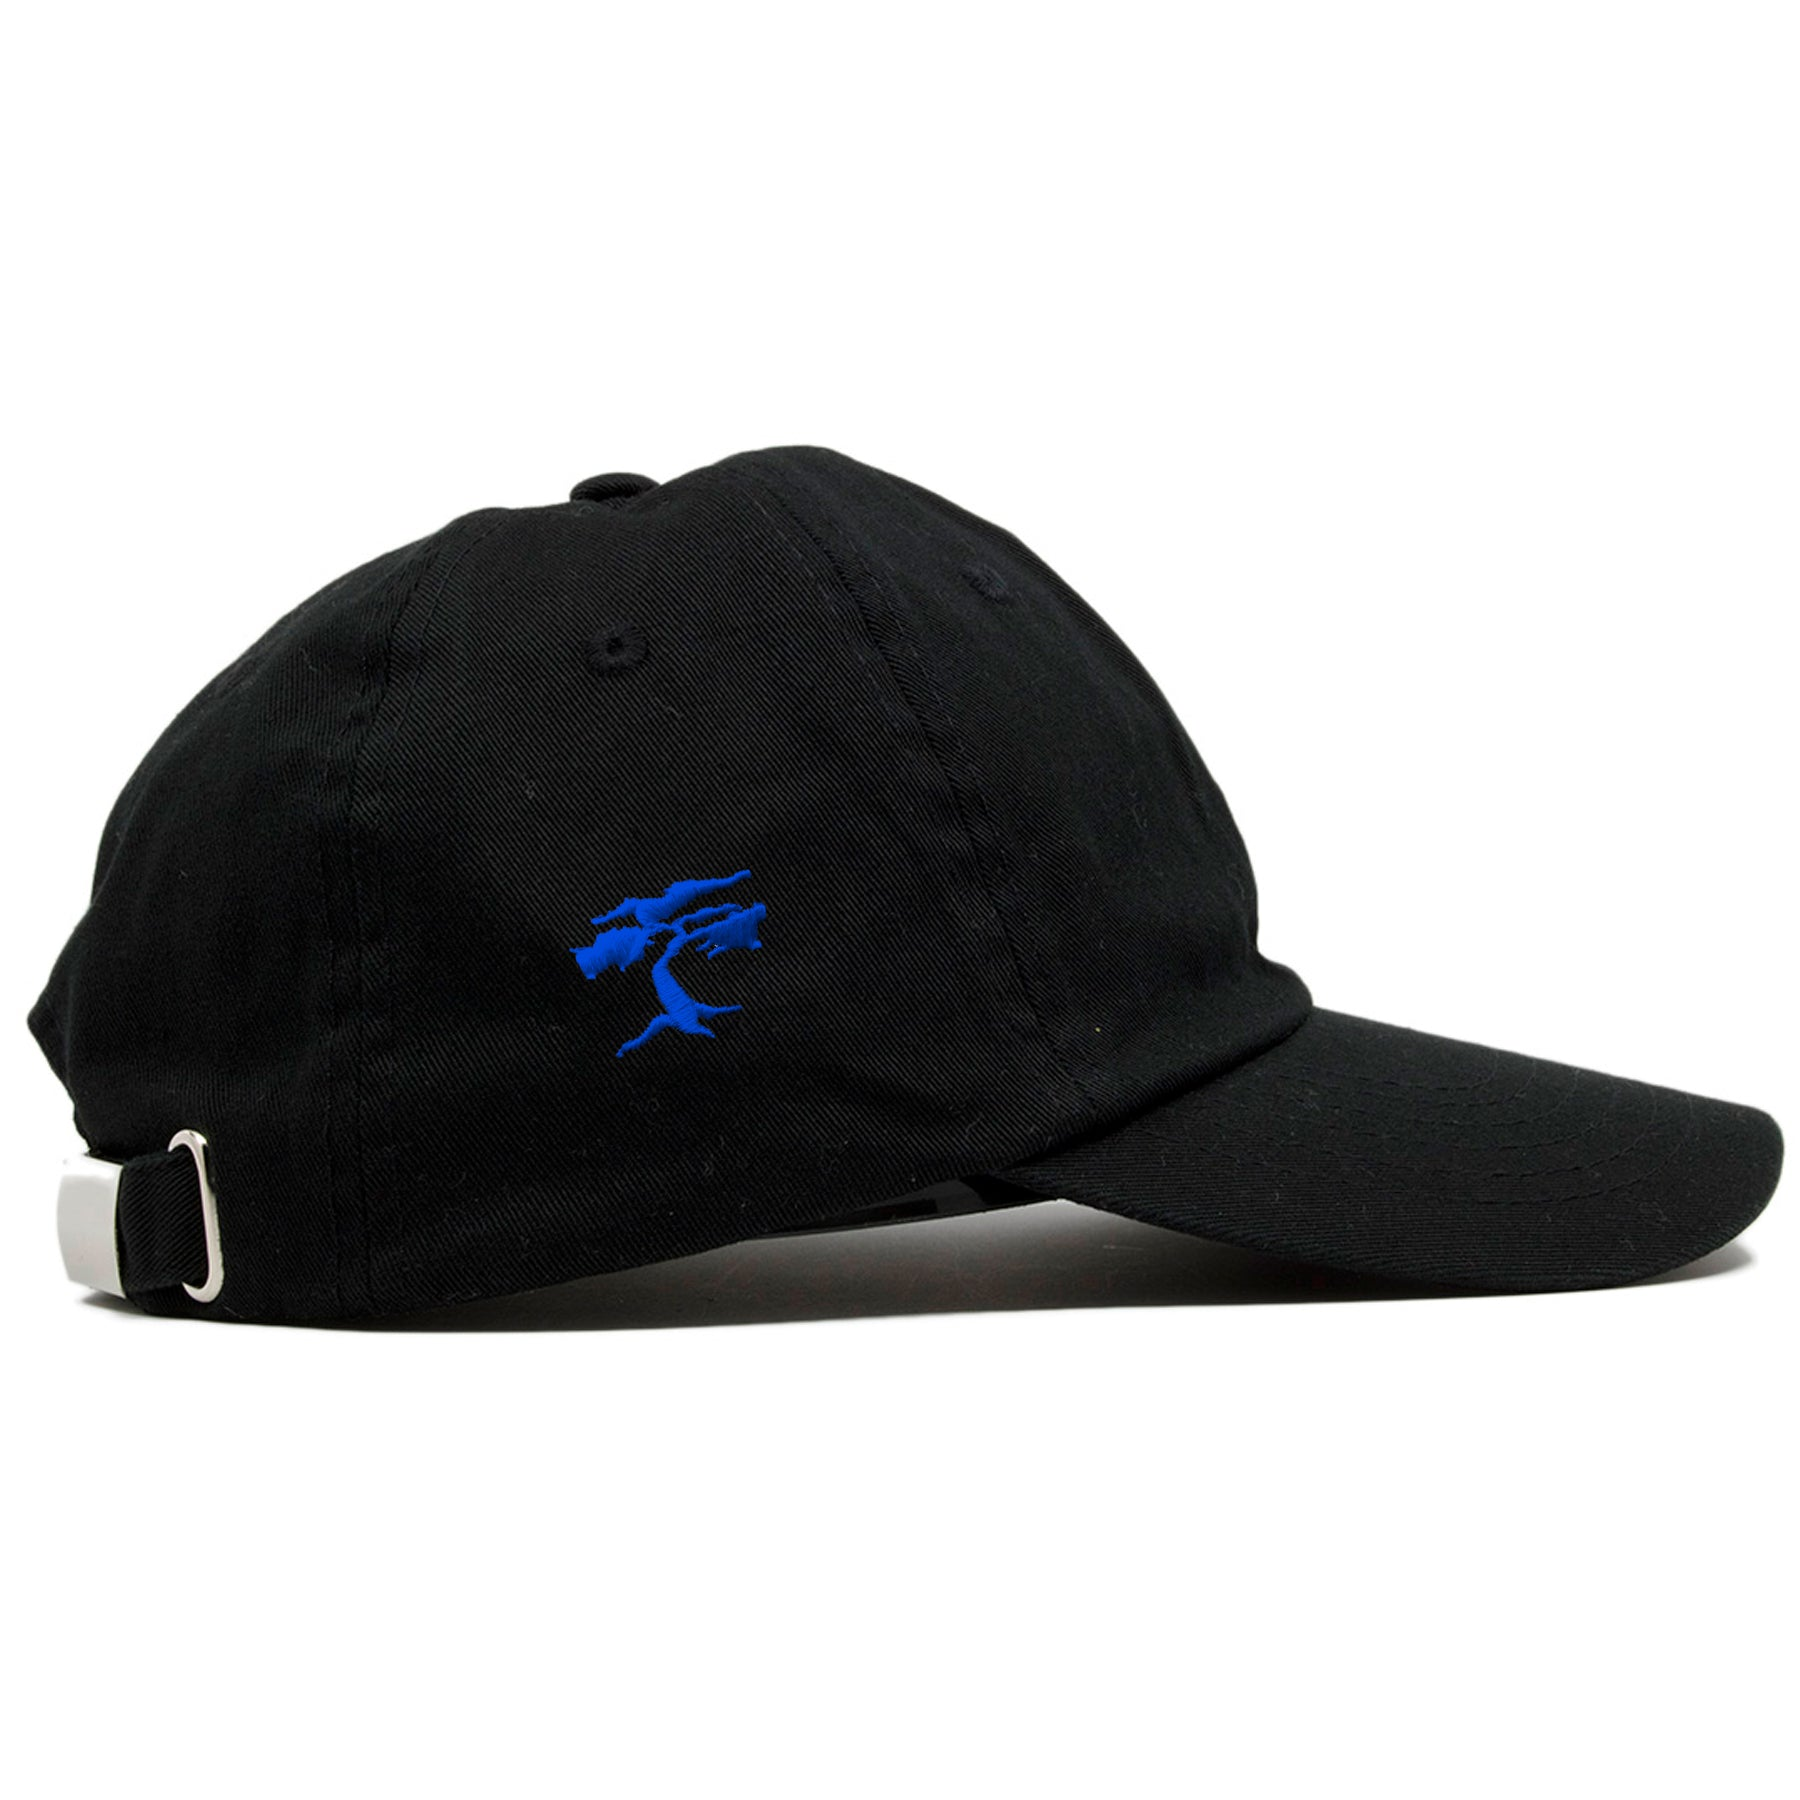 ... On the right side of the black Police Lives Matters Blue Lives Matters  dad hat b35666ce4974